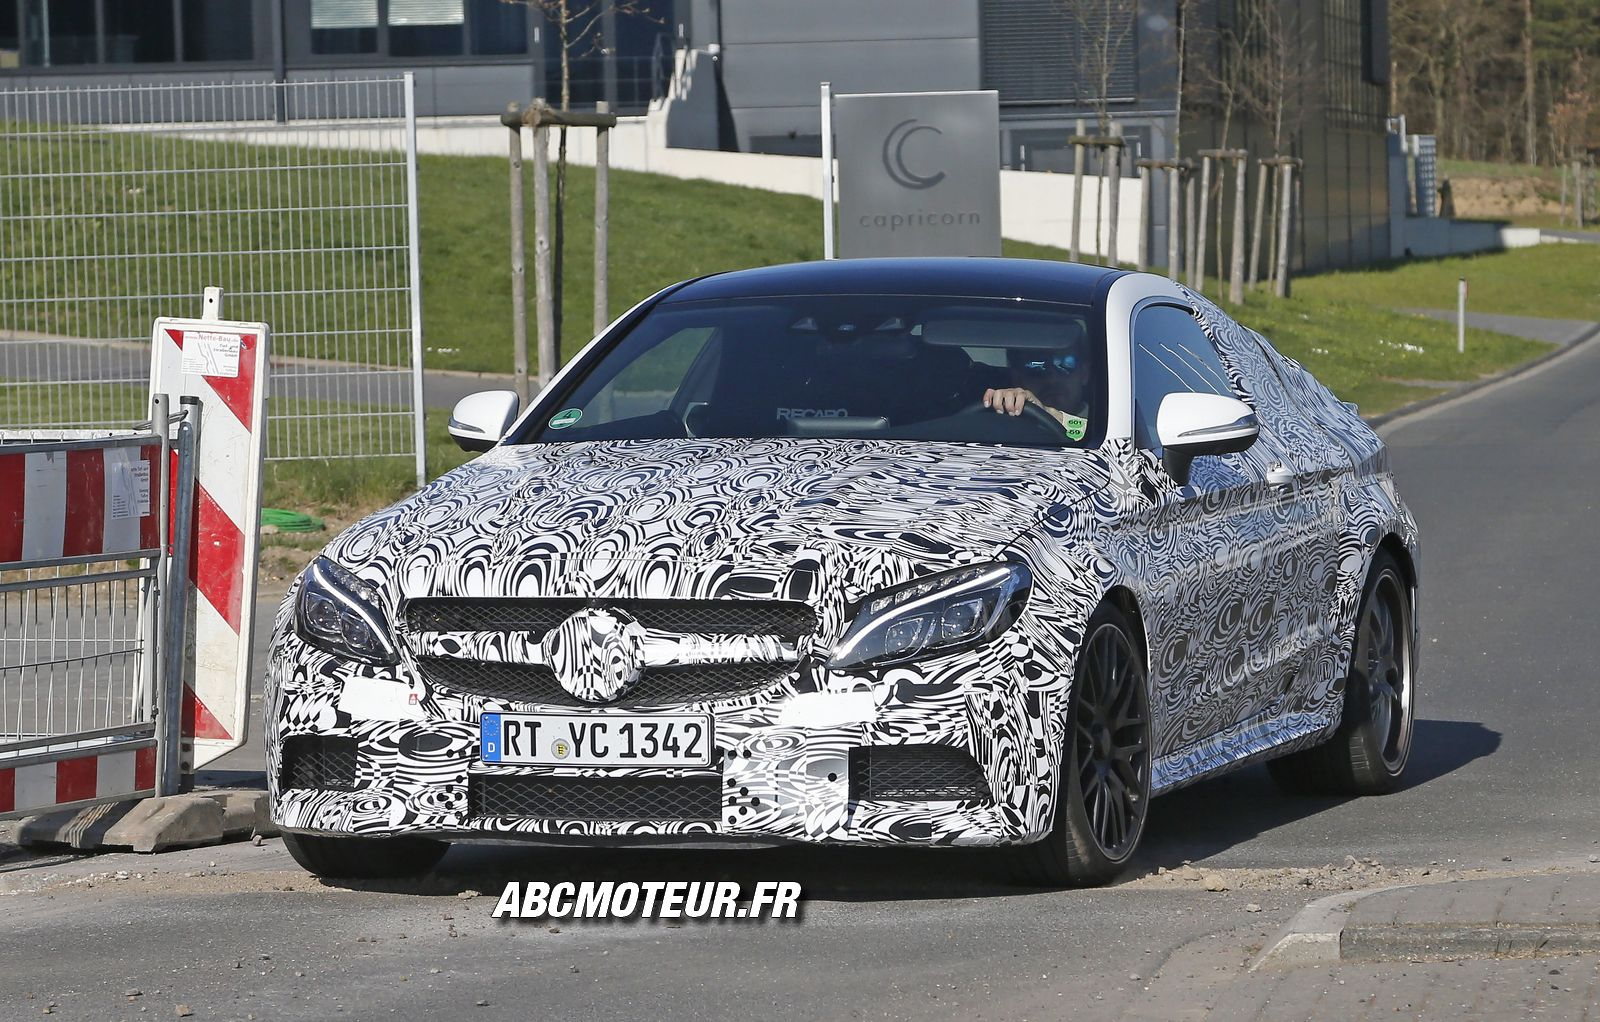 1ères photos espions de la Mercedes C 63 AMG Coupé 2016 !